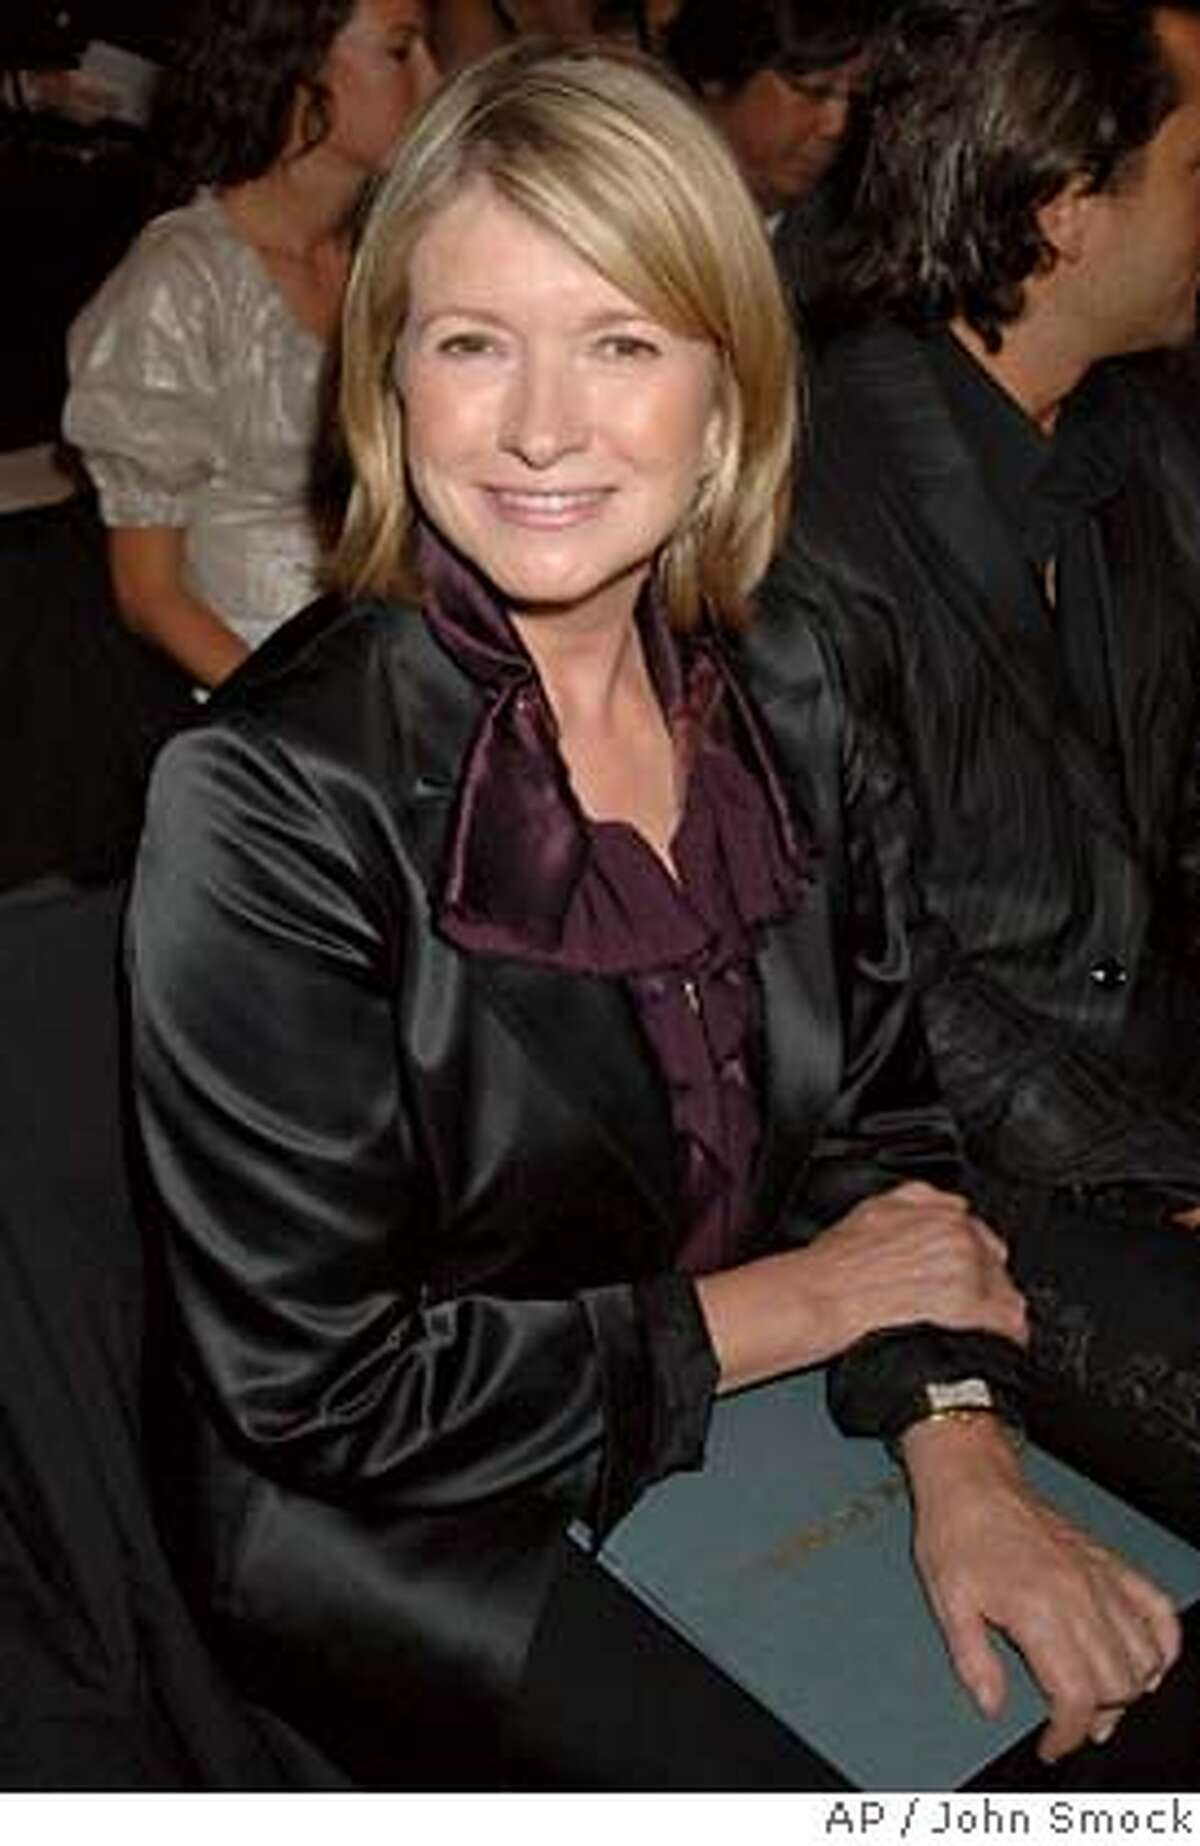 Martha Stewart sits front row at the Zac Posen 2008 spring/summer show during Fashion Week in New York, Tuesday, Sept. 11, 2007. (AP Photo/John Smock)